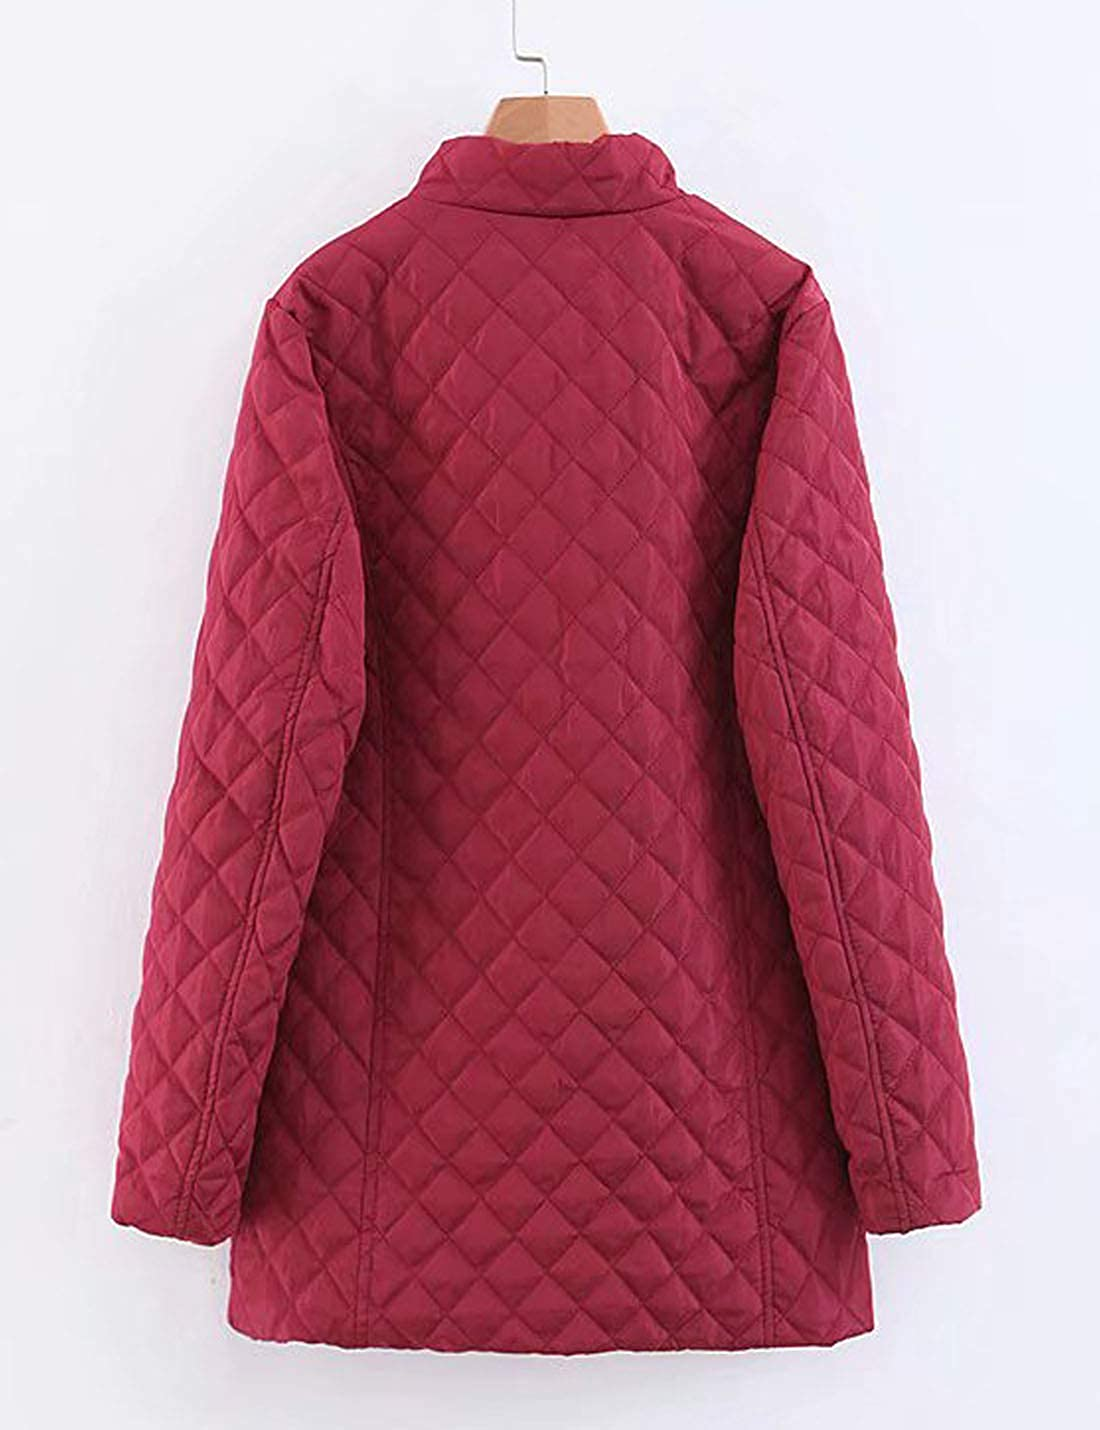 Flygo Women's Stand Collar Mid-Long Fleece Sherpa Lined Diamond Quilted Jacket